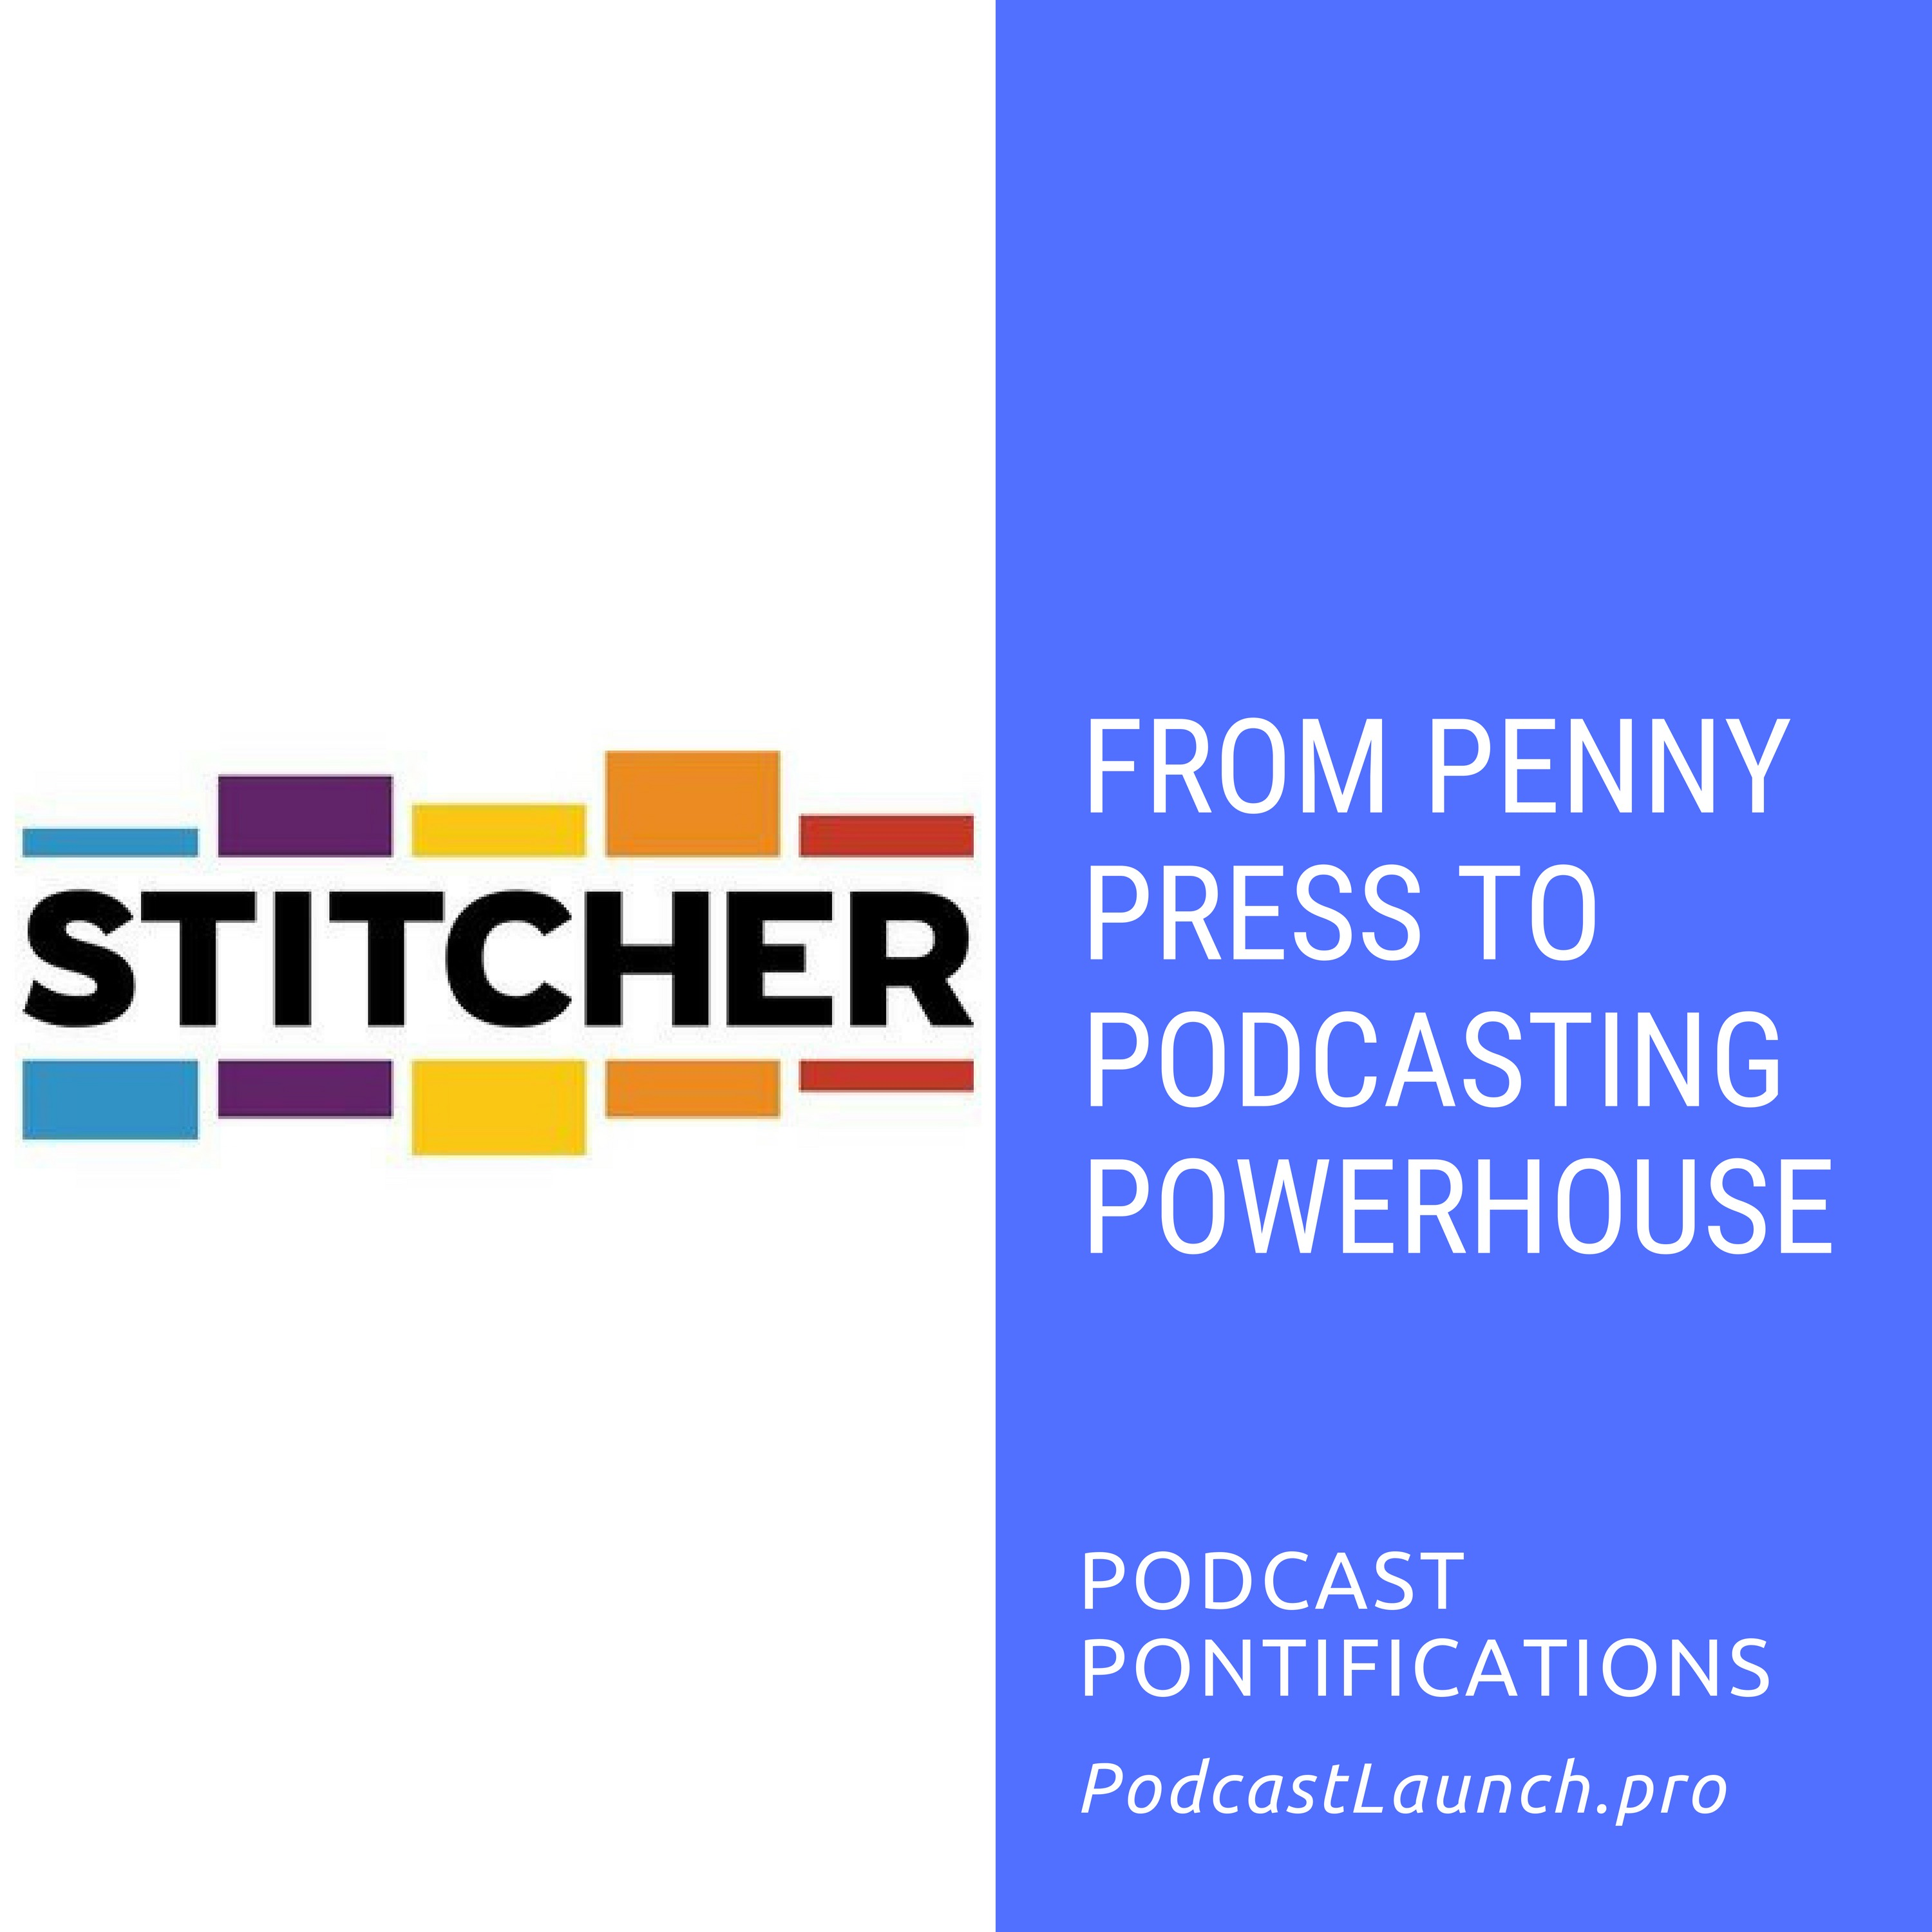 From Penny Press To Podcasting Powerhouse